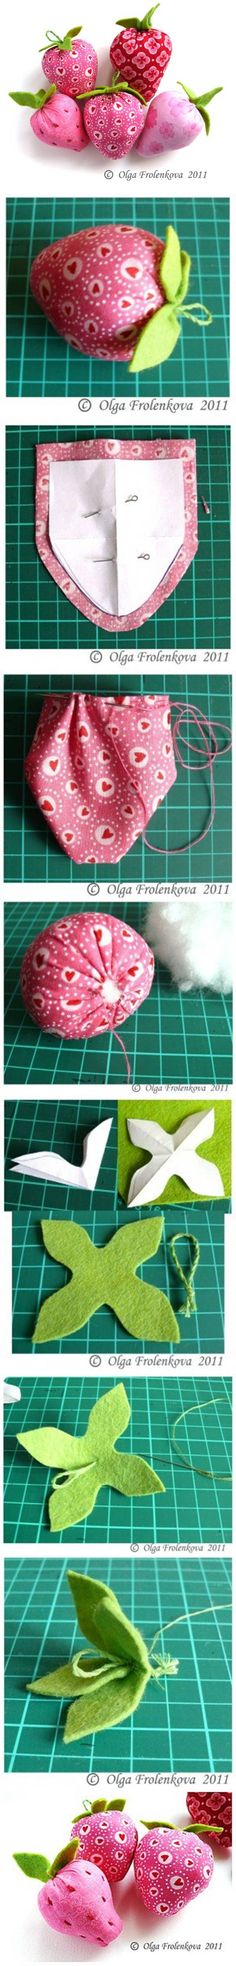 DIY Sew Fabric Strawberry